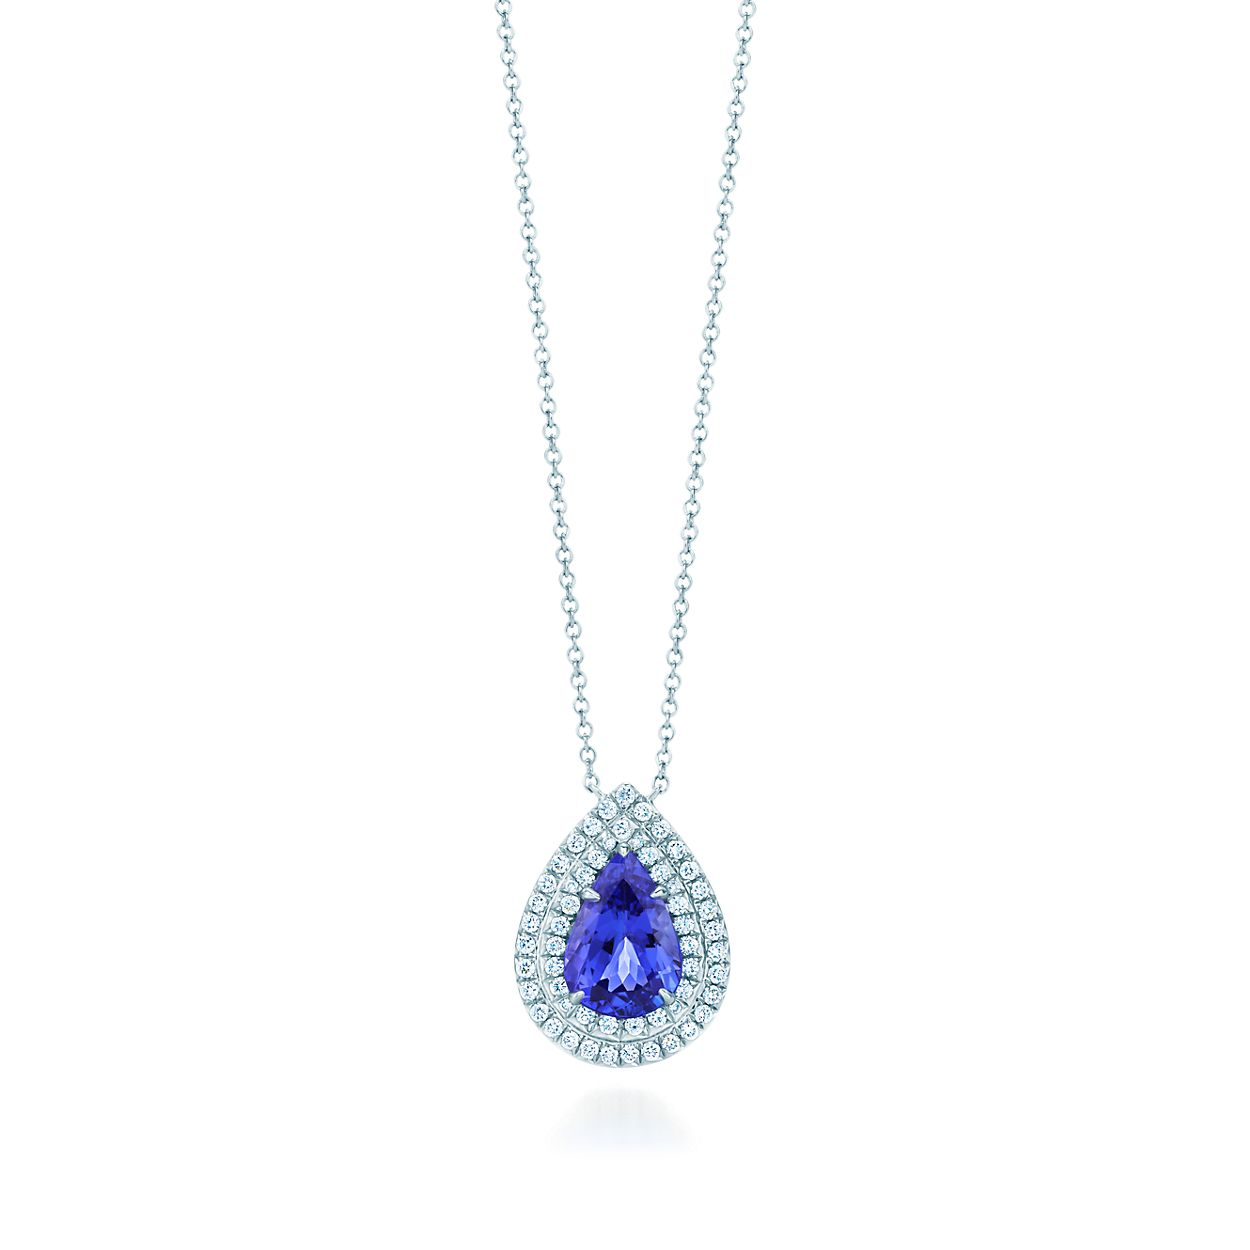 editor zoom ring soleste product tiffany subsampling false co jewellery scale the tanzanite upscale crop shop platinum